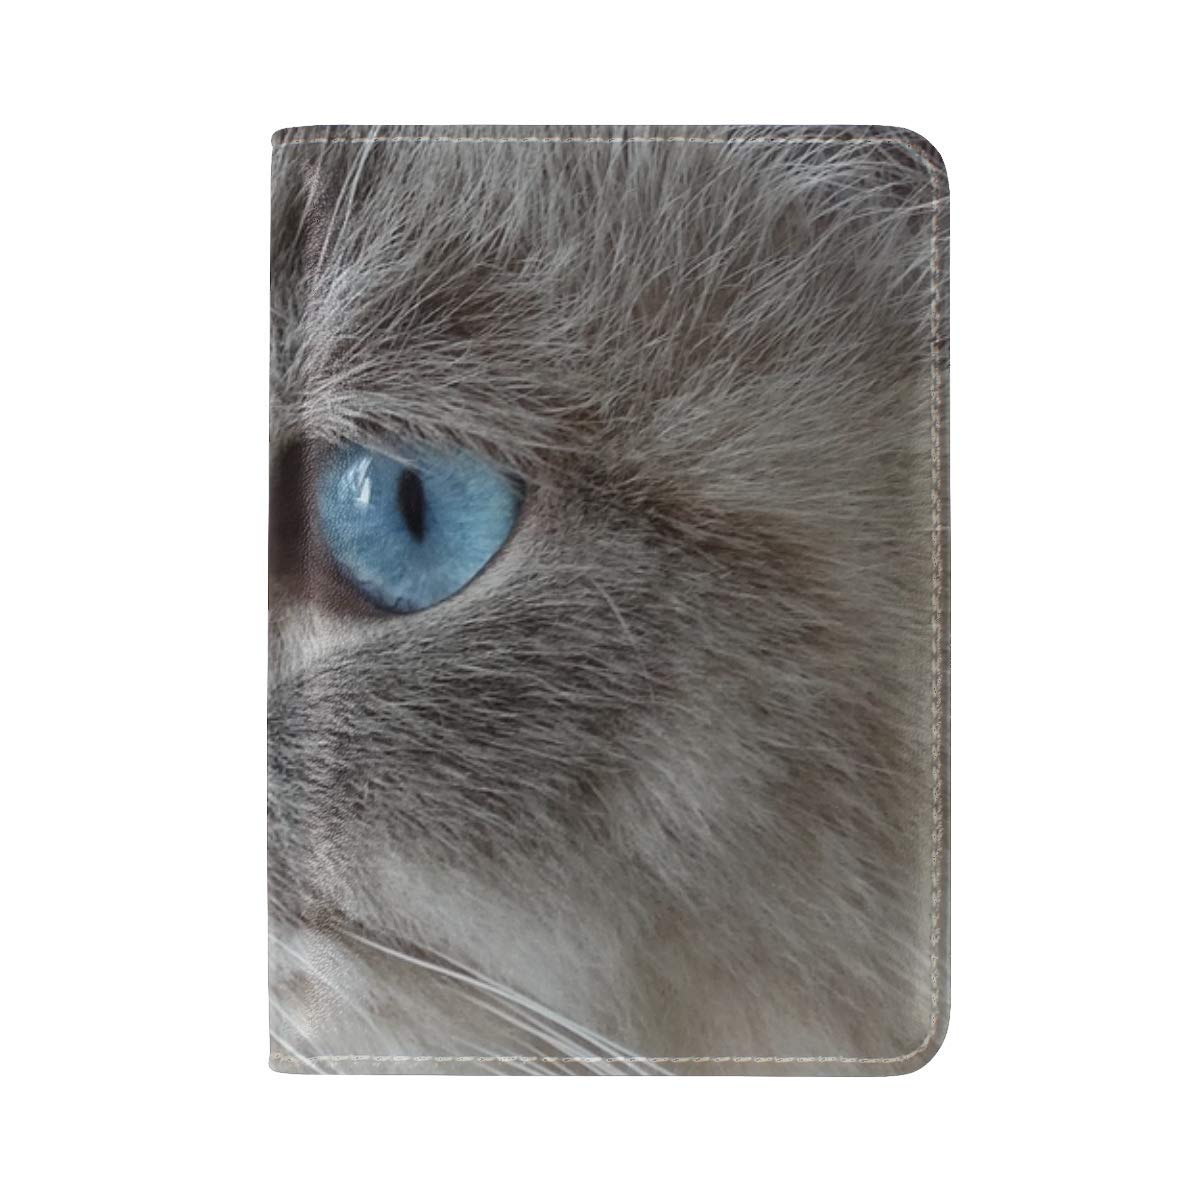 Cat Face Fluffy Blue Eyed Leather Passport Holder Cover Case Travel One Pocket